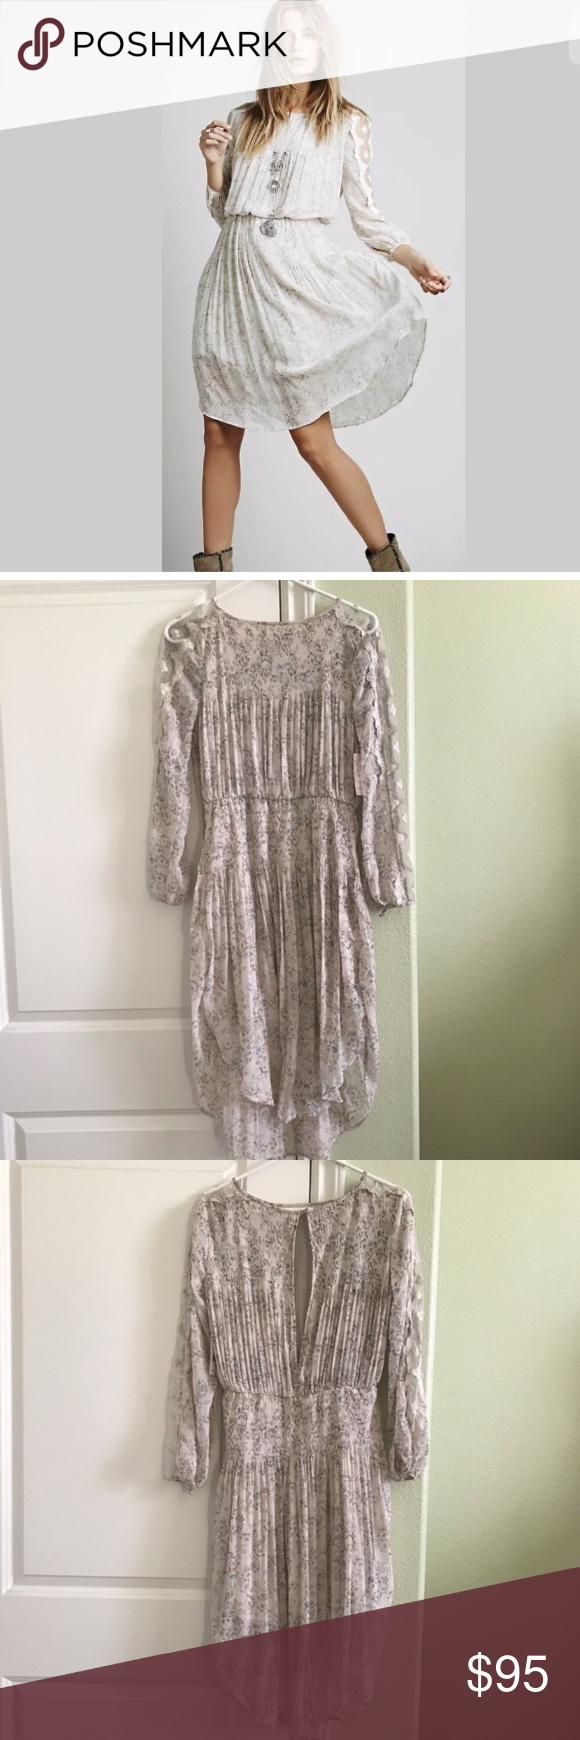 FREE PEOPLE  Charlotte  Dress in Alabaster NWT Round neck  Long sleeves with sheer lace panels  Elasticized waist  Button cuffs  Gathered skirt  Open back with hook closure  Lined   MATERIAL & CARE INSTRUCTIONS  Shell: 100% Polyester  Lining: 100% Rayon  Lace: 70% Rayon, 30% Nylon  Hand wash; May be dry cleaned Free People Dresses Midi